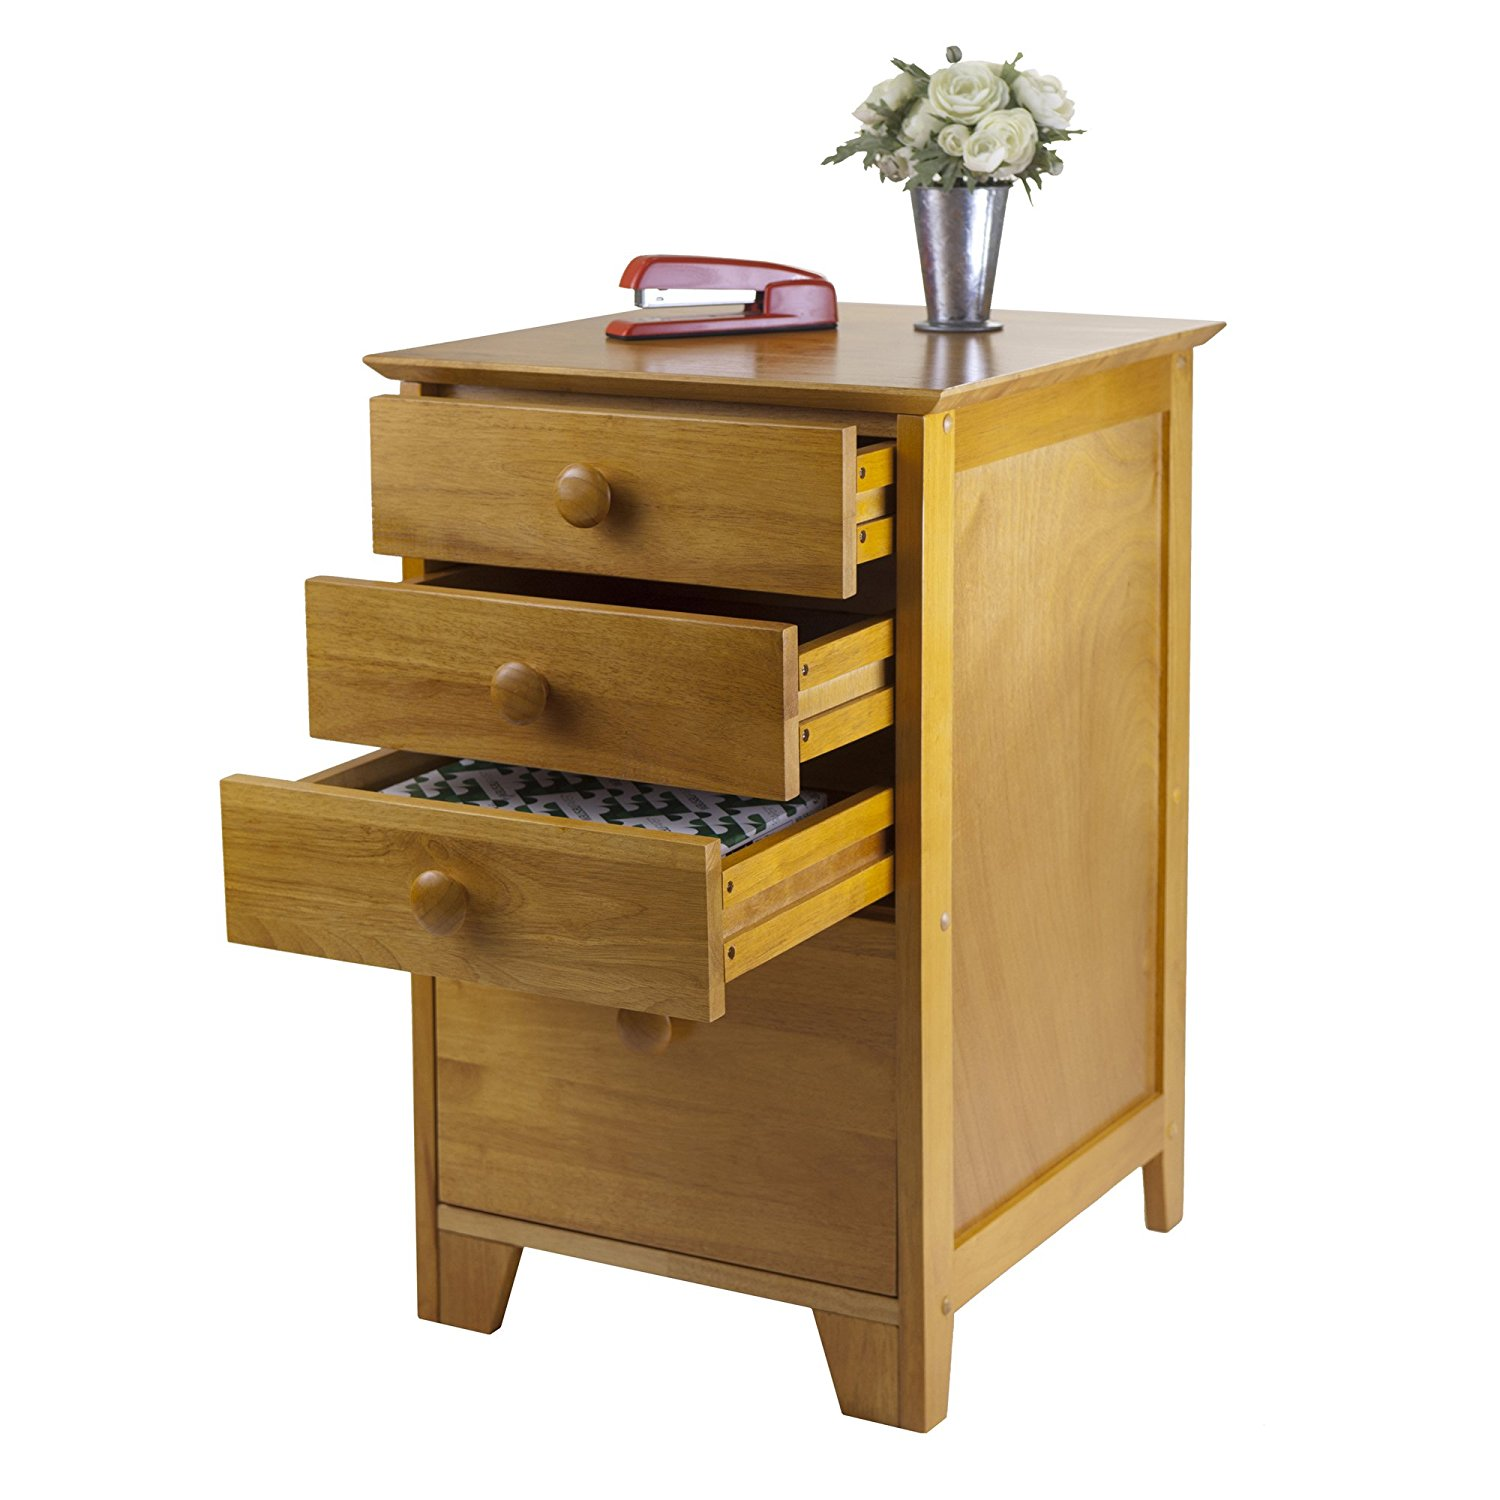 Honey Pine Filing Cabinet - Extra Storage Drawers